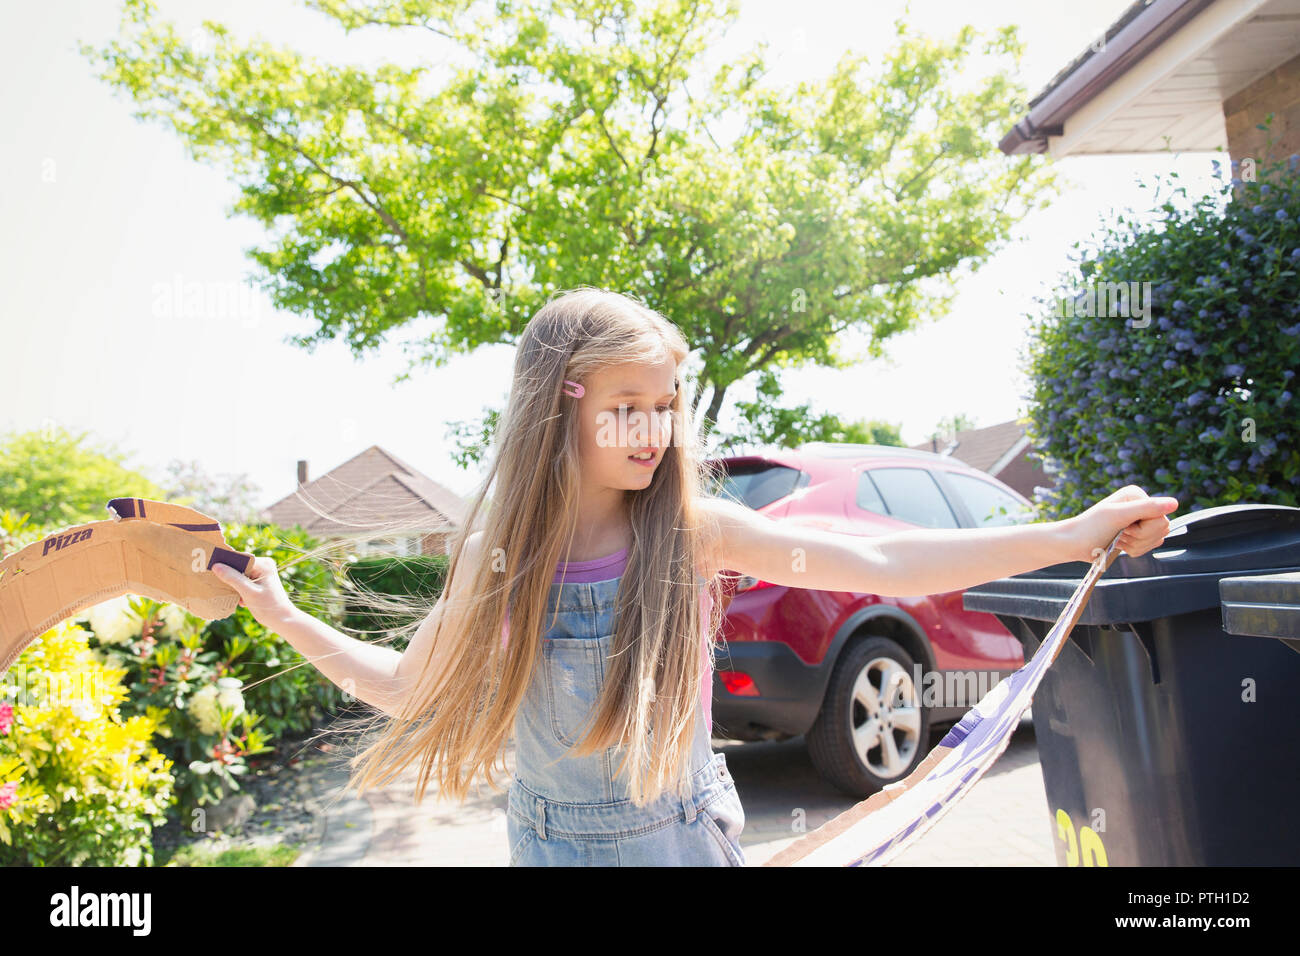 Girl recycling in driveway - Stock Image